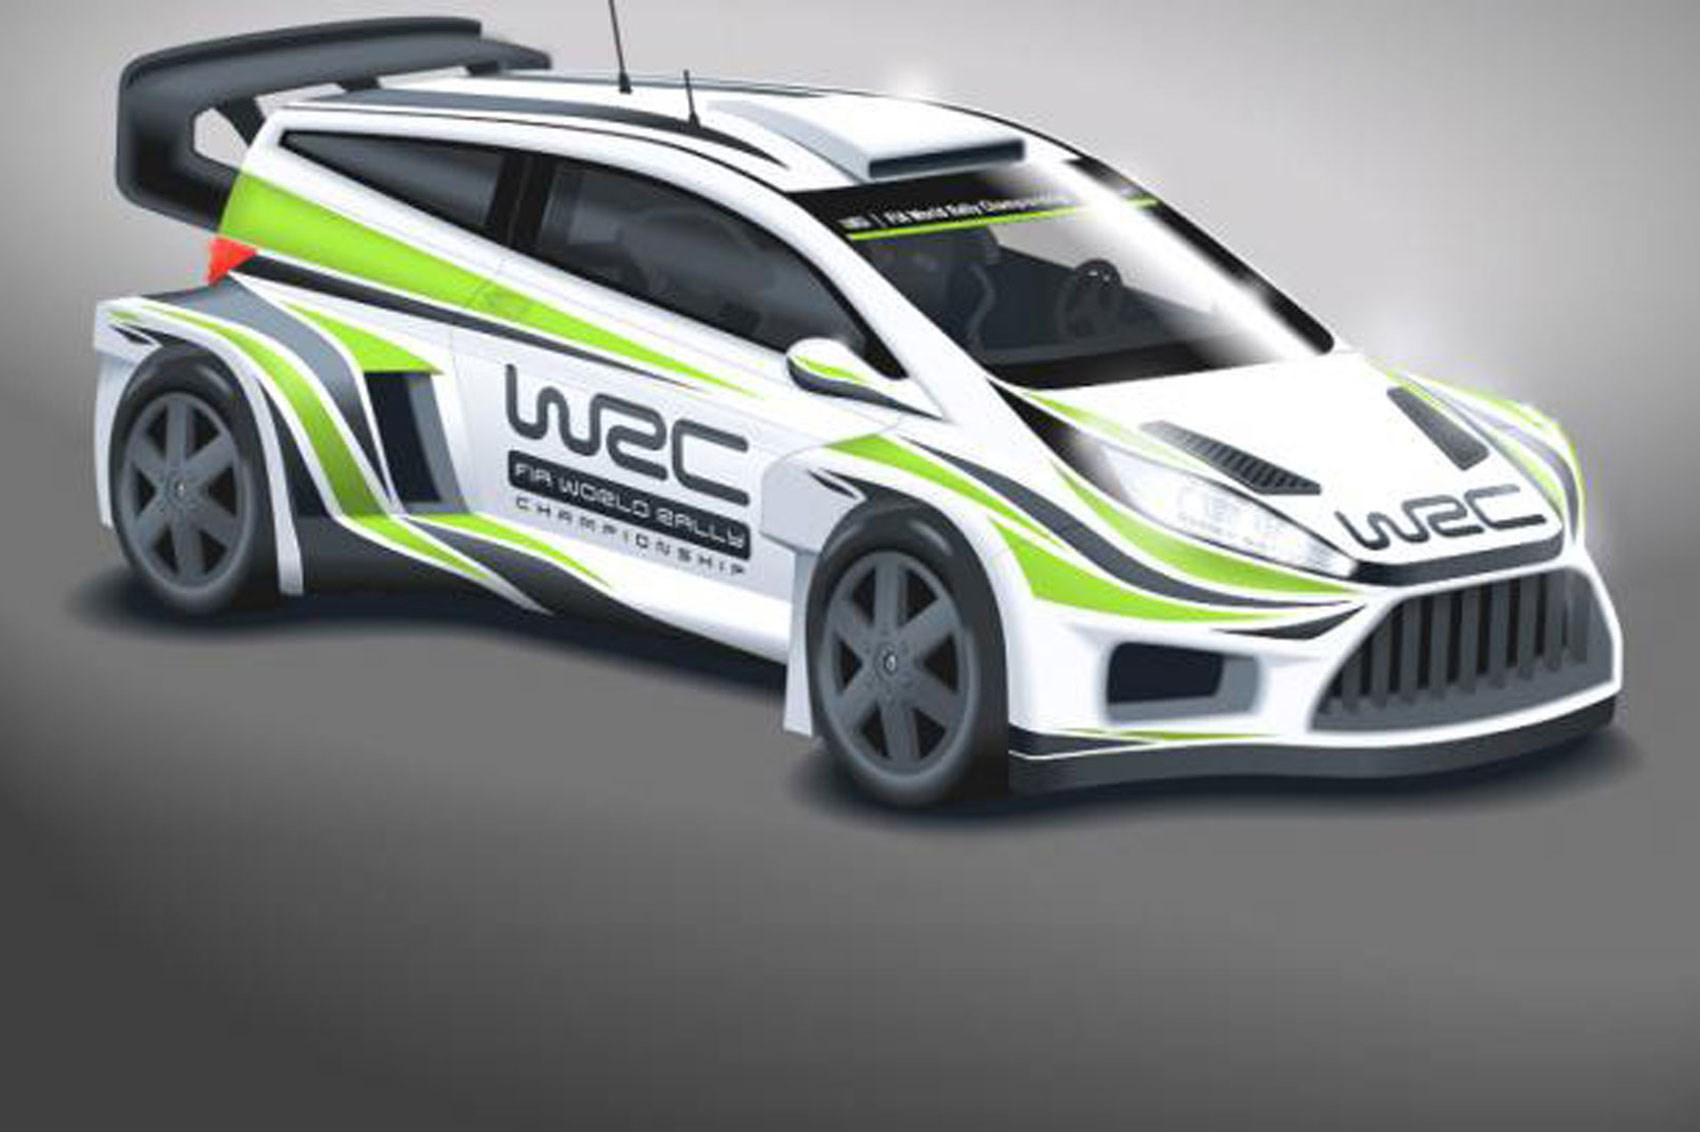 Ultrablogus  Pretty Wild New Look For Wrc Cars In  By Car Magazine With Glamorous Wrc Cars Will Get Wider Bodies Bigger Wings And More Power For  With Alluring Sandblasting Interior Brick Walls Also Mk Golf Interior In Addition Dehumidifier For Car Interior And Vita Interiors Review As Well As Vw Camper Interiors Diy Additionally Car Interior Plastic Scratch Remover From Carmagazinecouk With Ultrablogus  Glamorous Wild New Look For Wrc Cars In  By Car Magazine With Alluring Wrc Cars Will Get Wider Bodies Bigger Wings And More Power For  And Pretty Sandblasting Interior Brick Walls Also Mk Golf Interior In Addition Dehumidifier For Car Interior From Carmagazinecouk